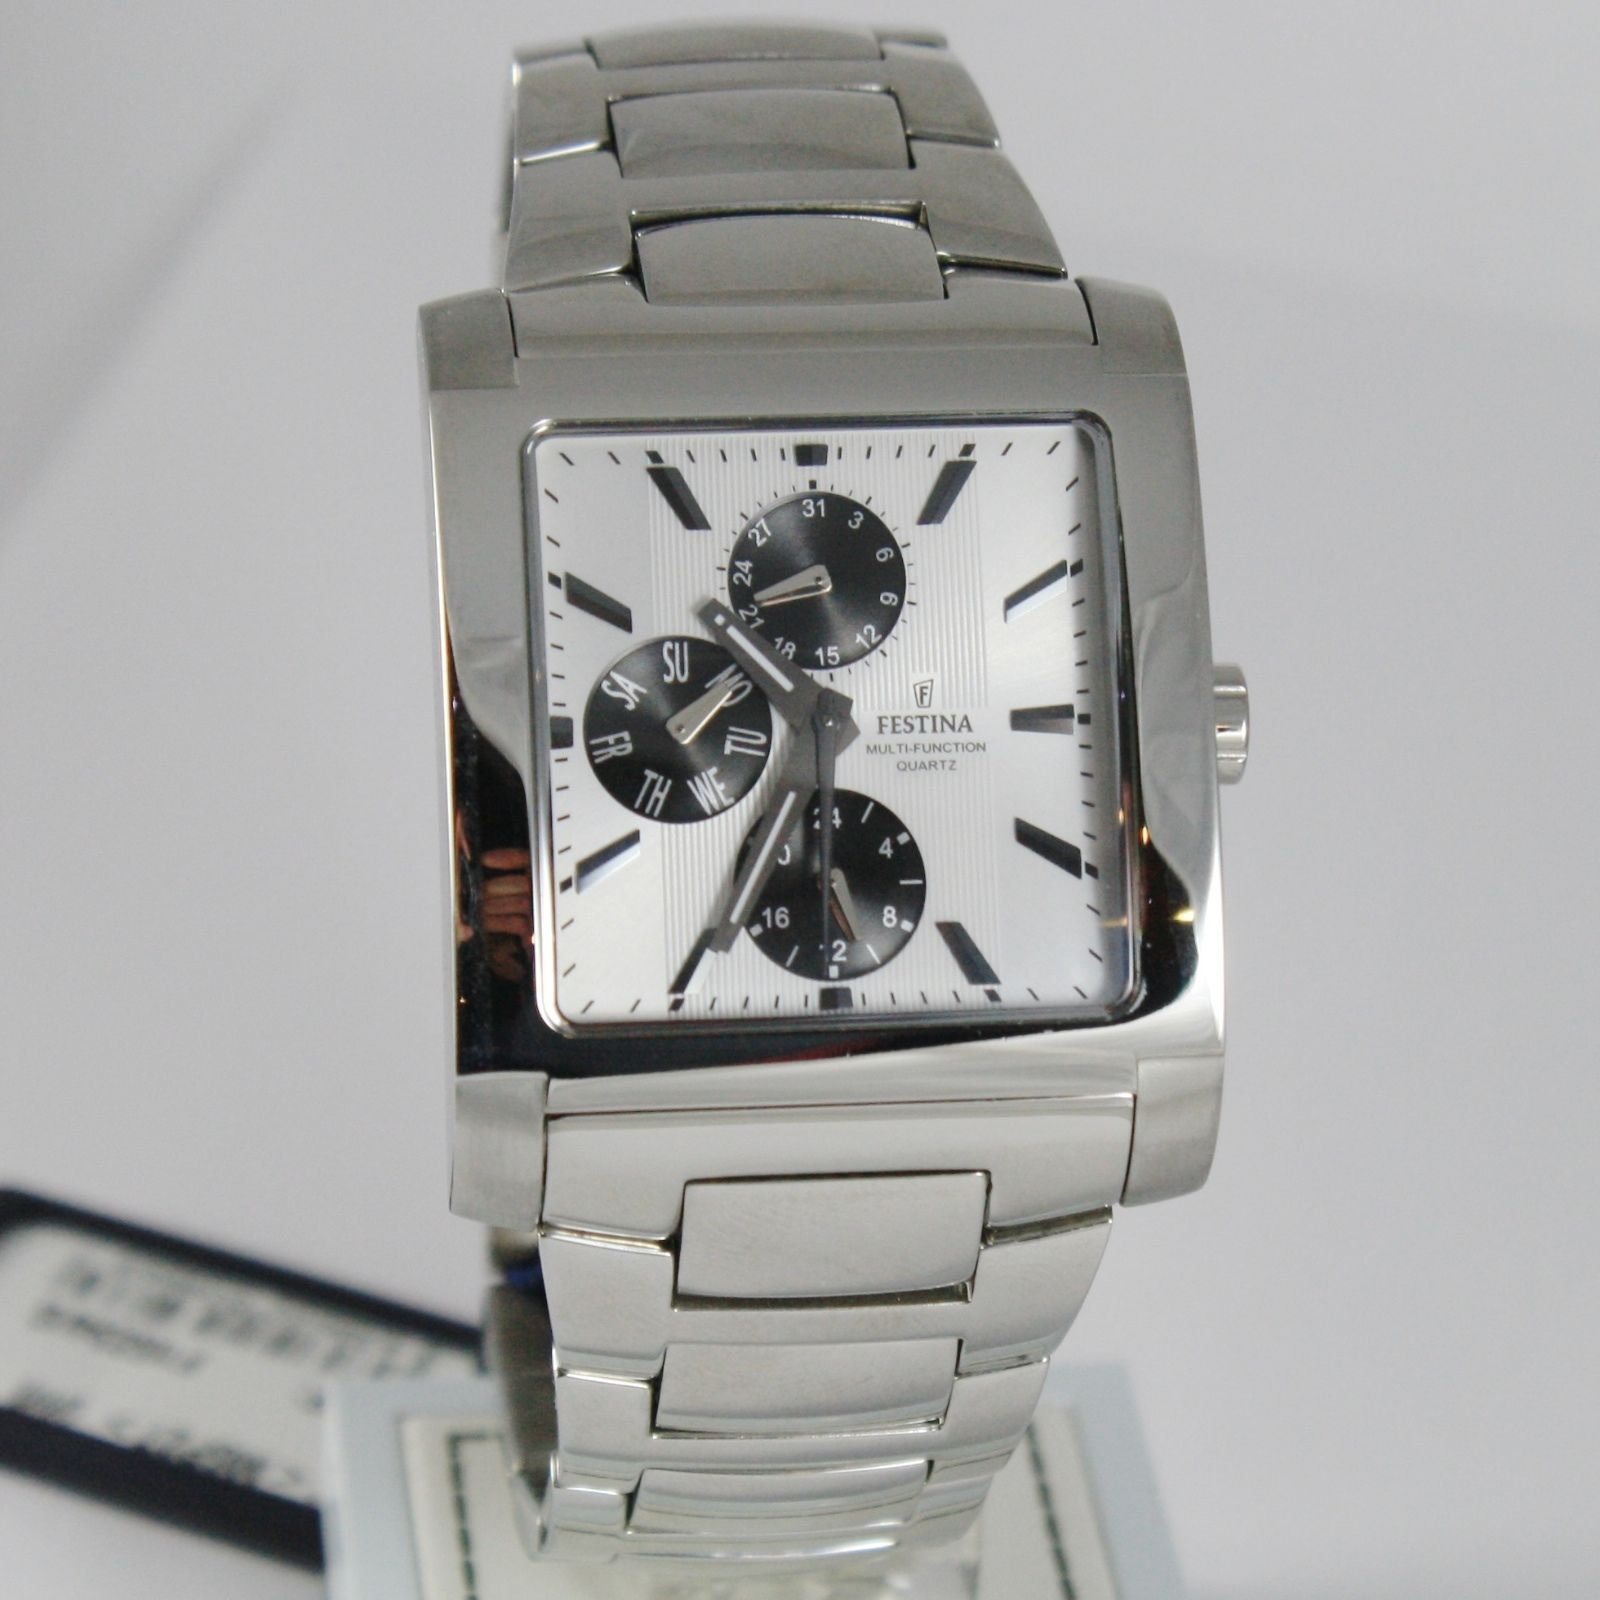 FESTINA WATCH, QUARTZ SQUARE 37 MM CASE, 5 ATM, DATE DAY 24 HOURS MULTIFUNCTION